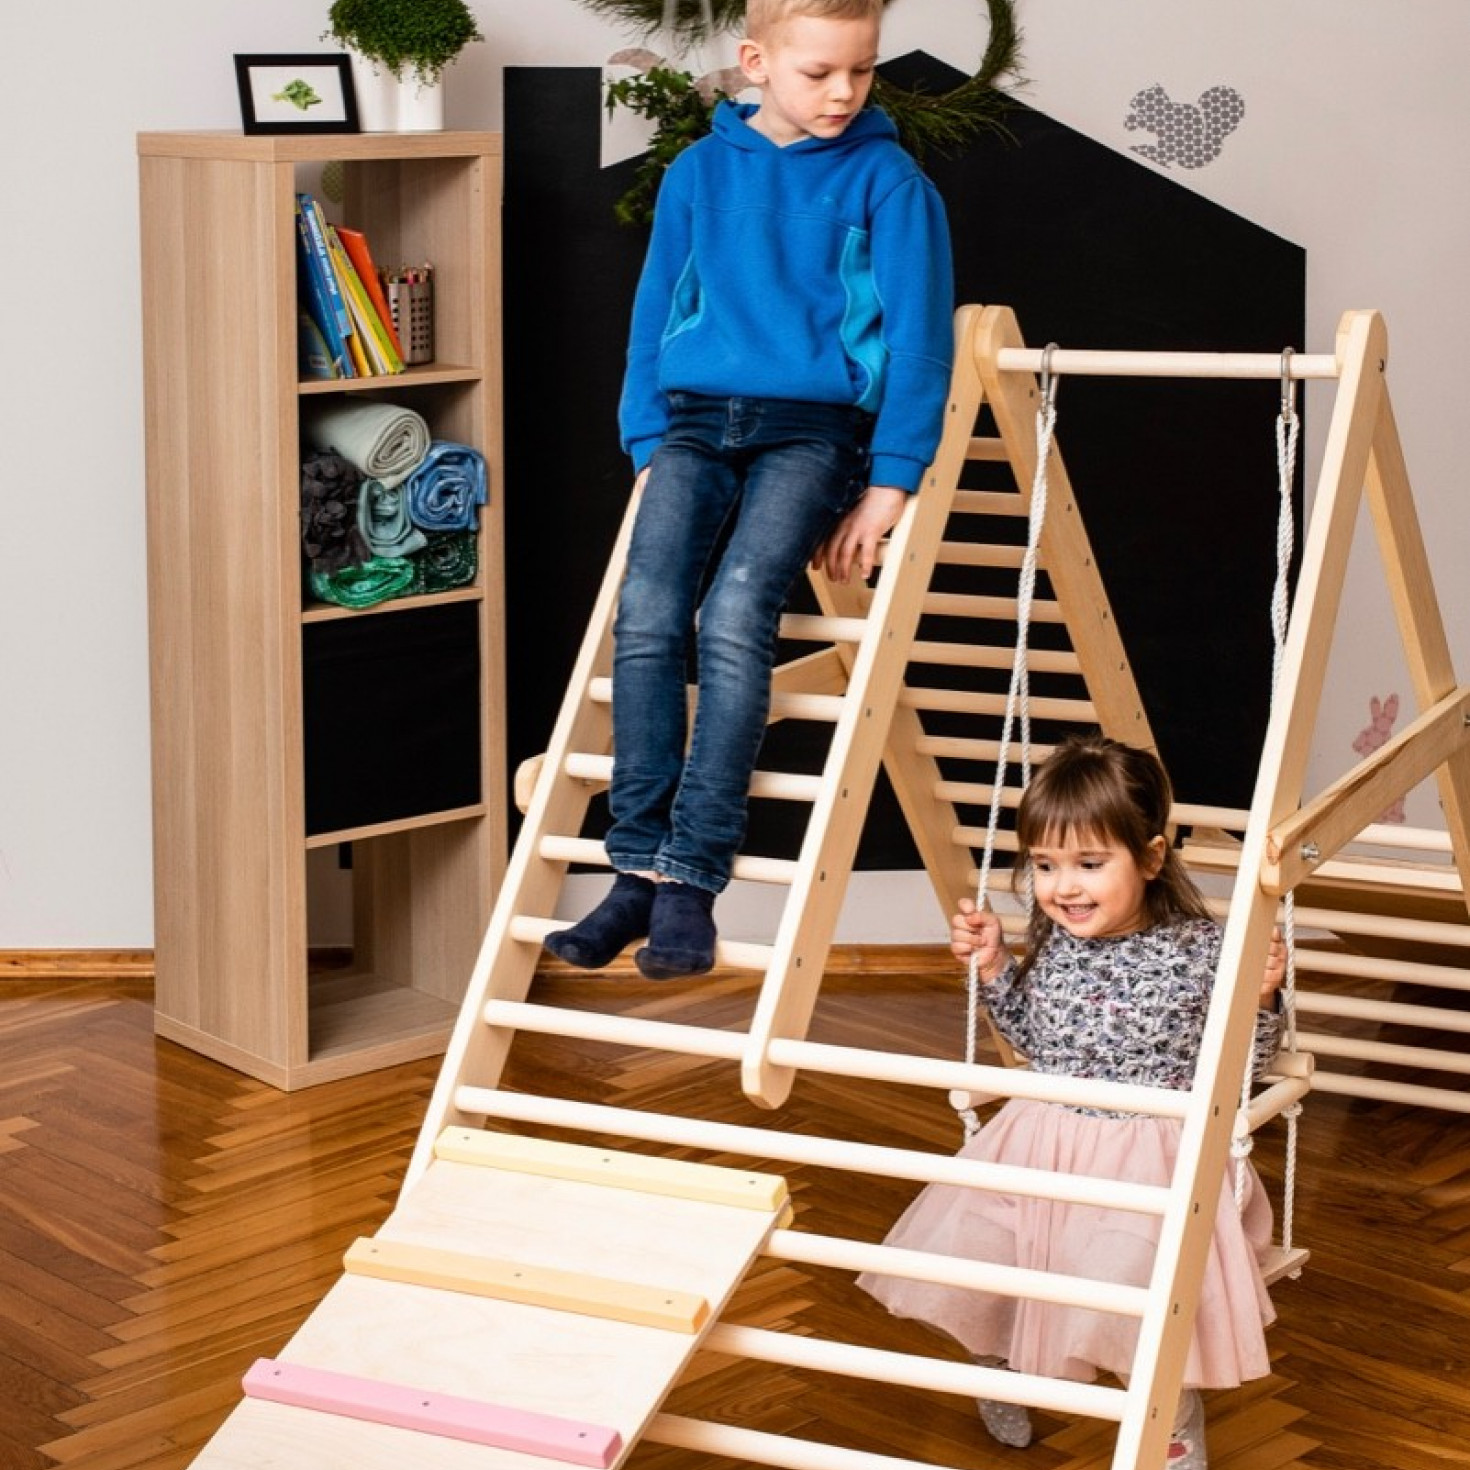 Children having fun on a climbing ladder